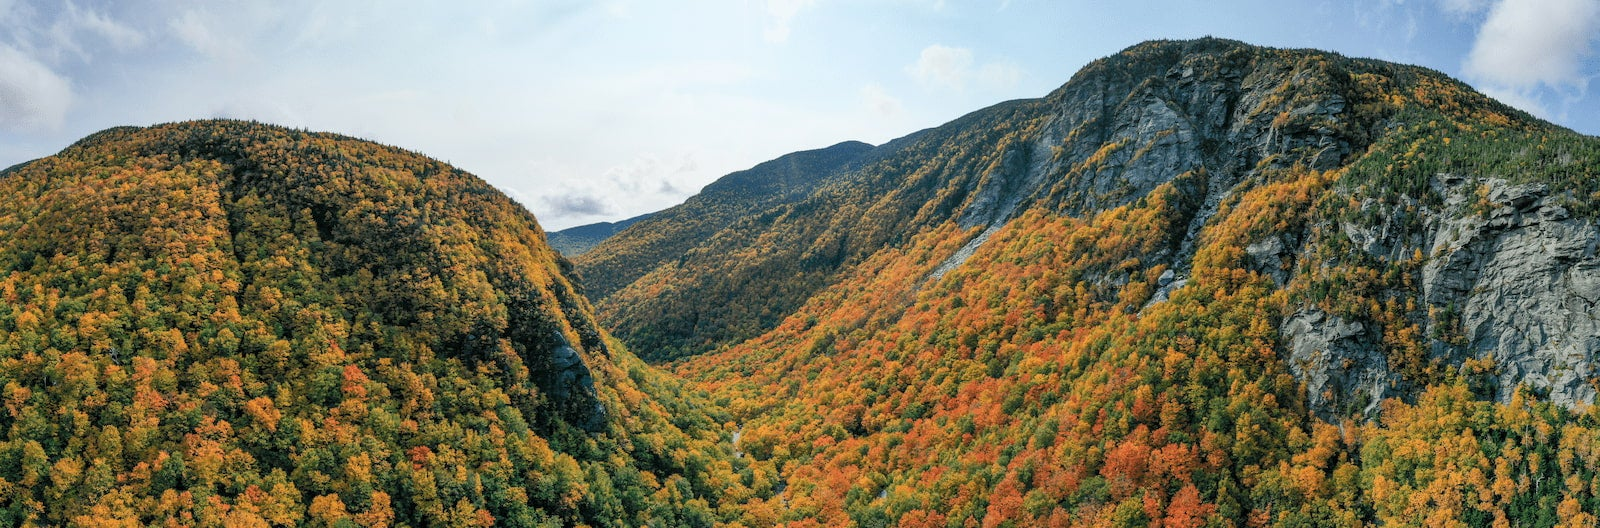 The fall foliage in Vermont's Green Mountains at Smuggler's Notch.